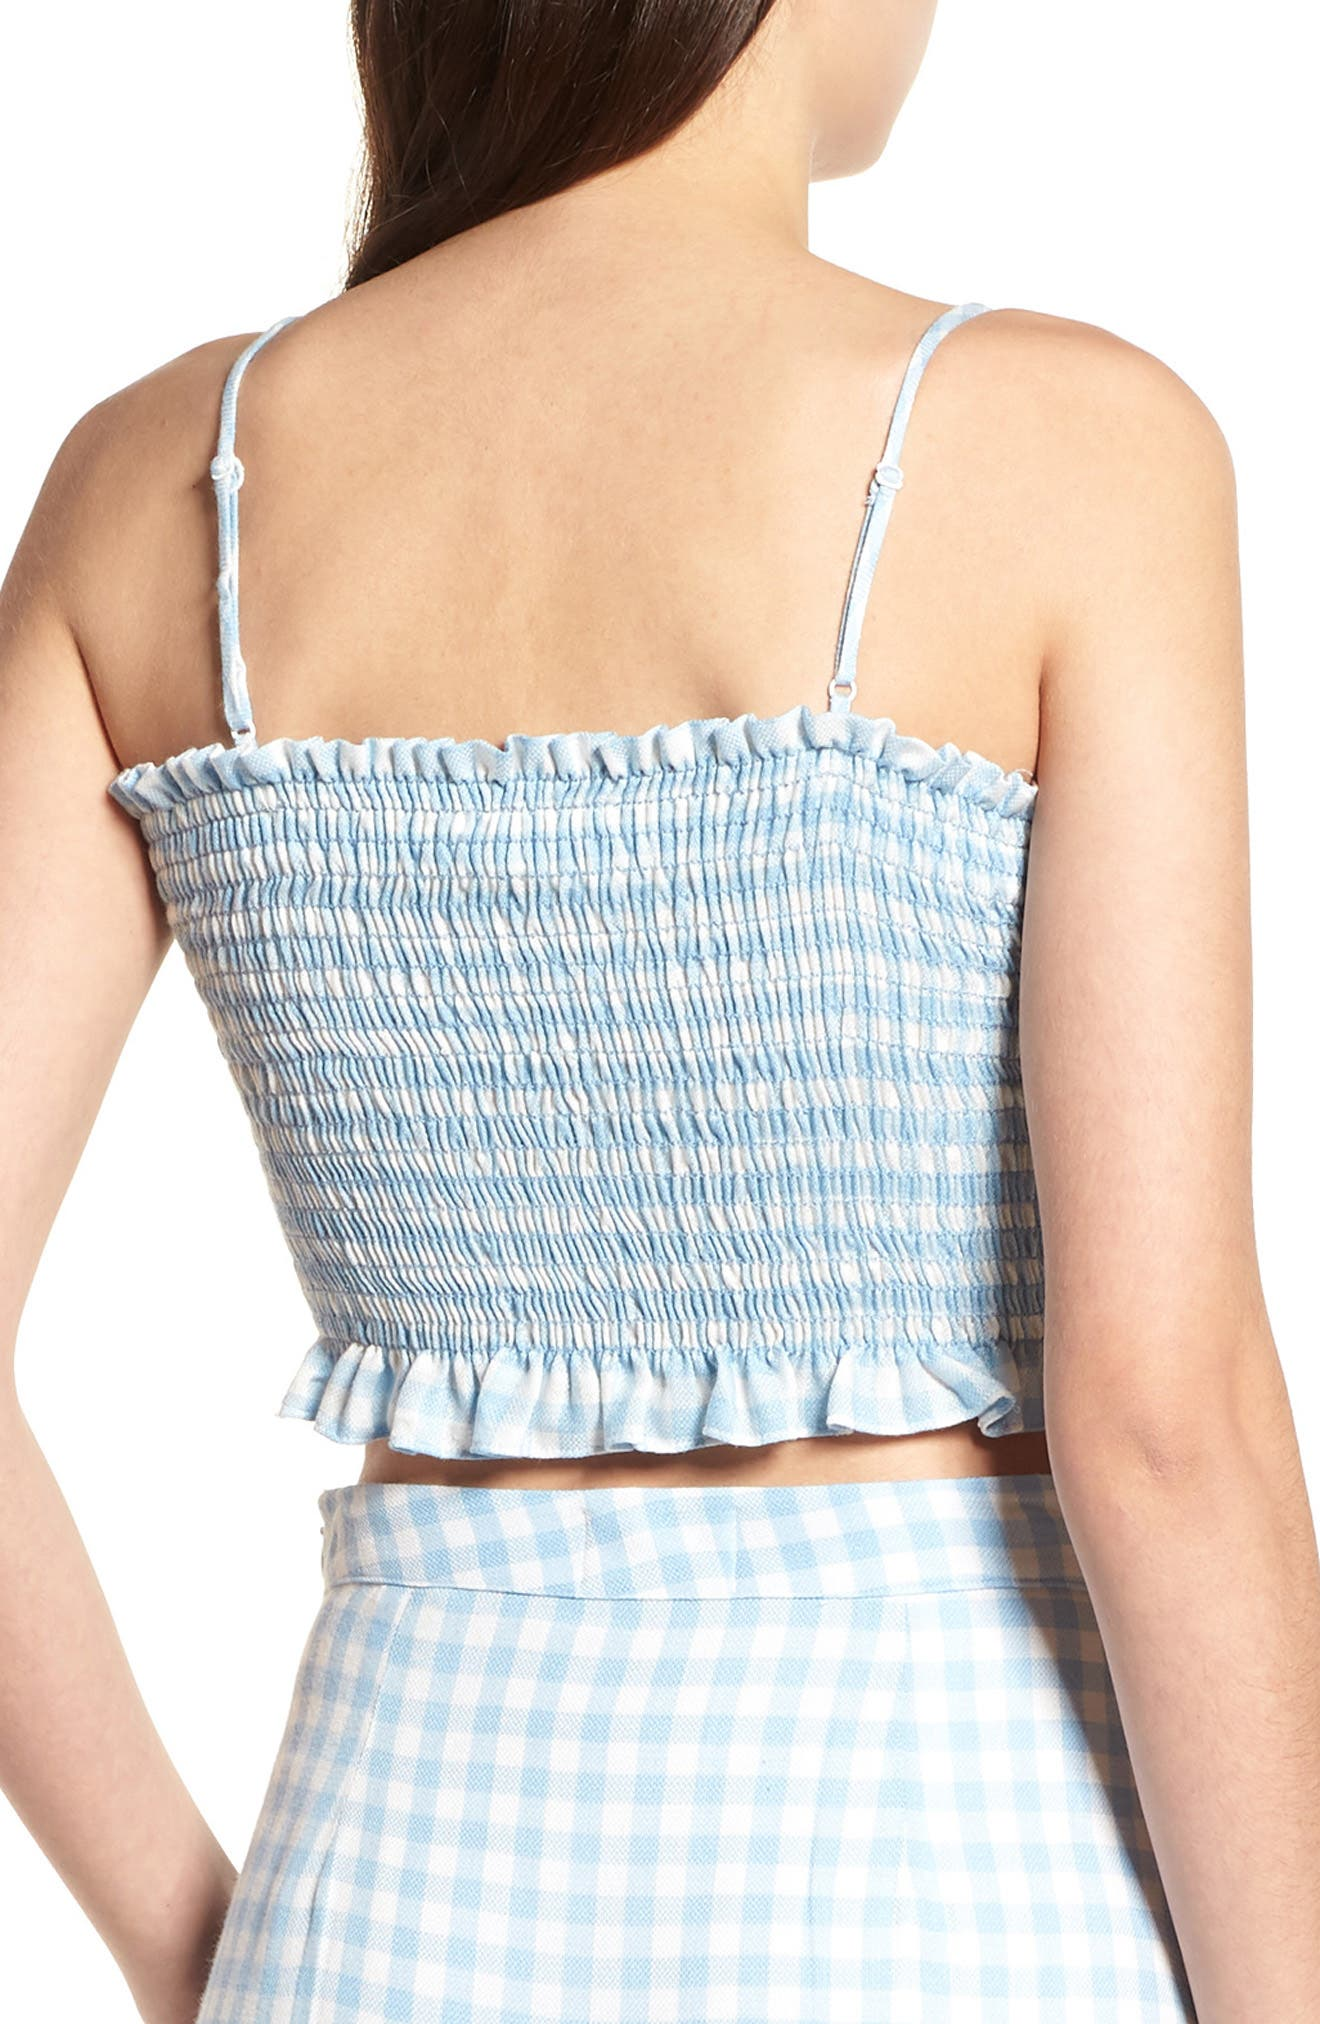 Fiesta Smocked Gingham Crop Top,                             Alternate thumbnail 4, color,                             Baby Blue